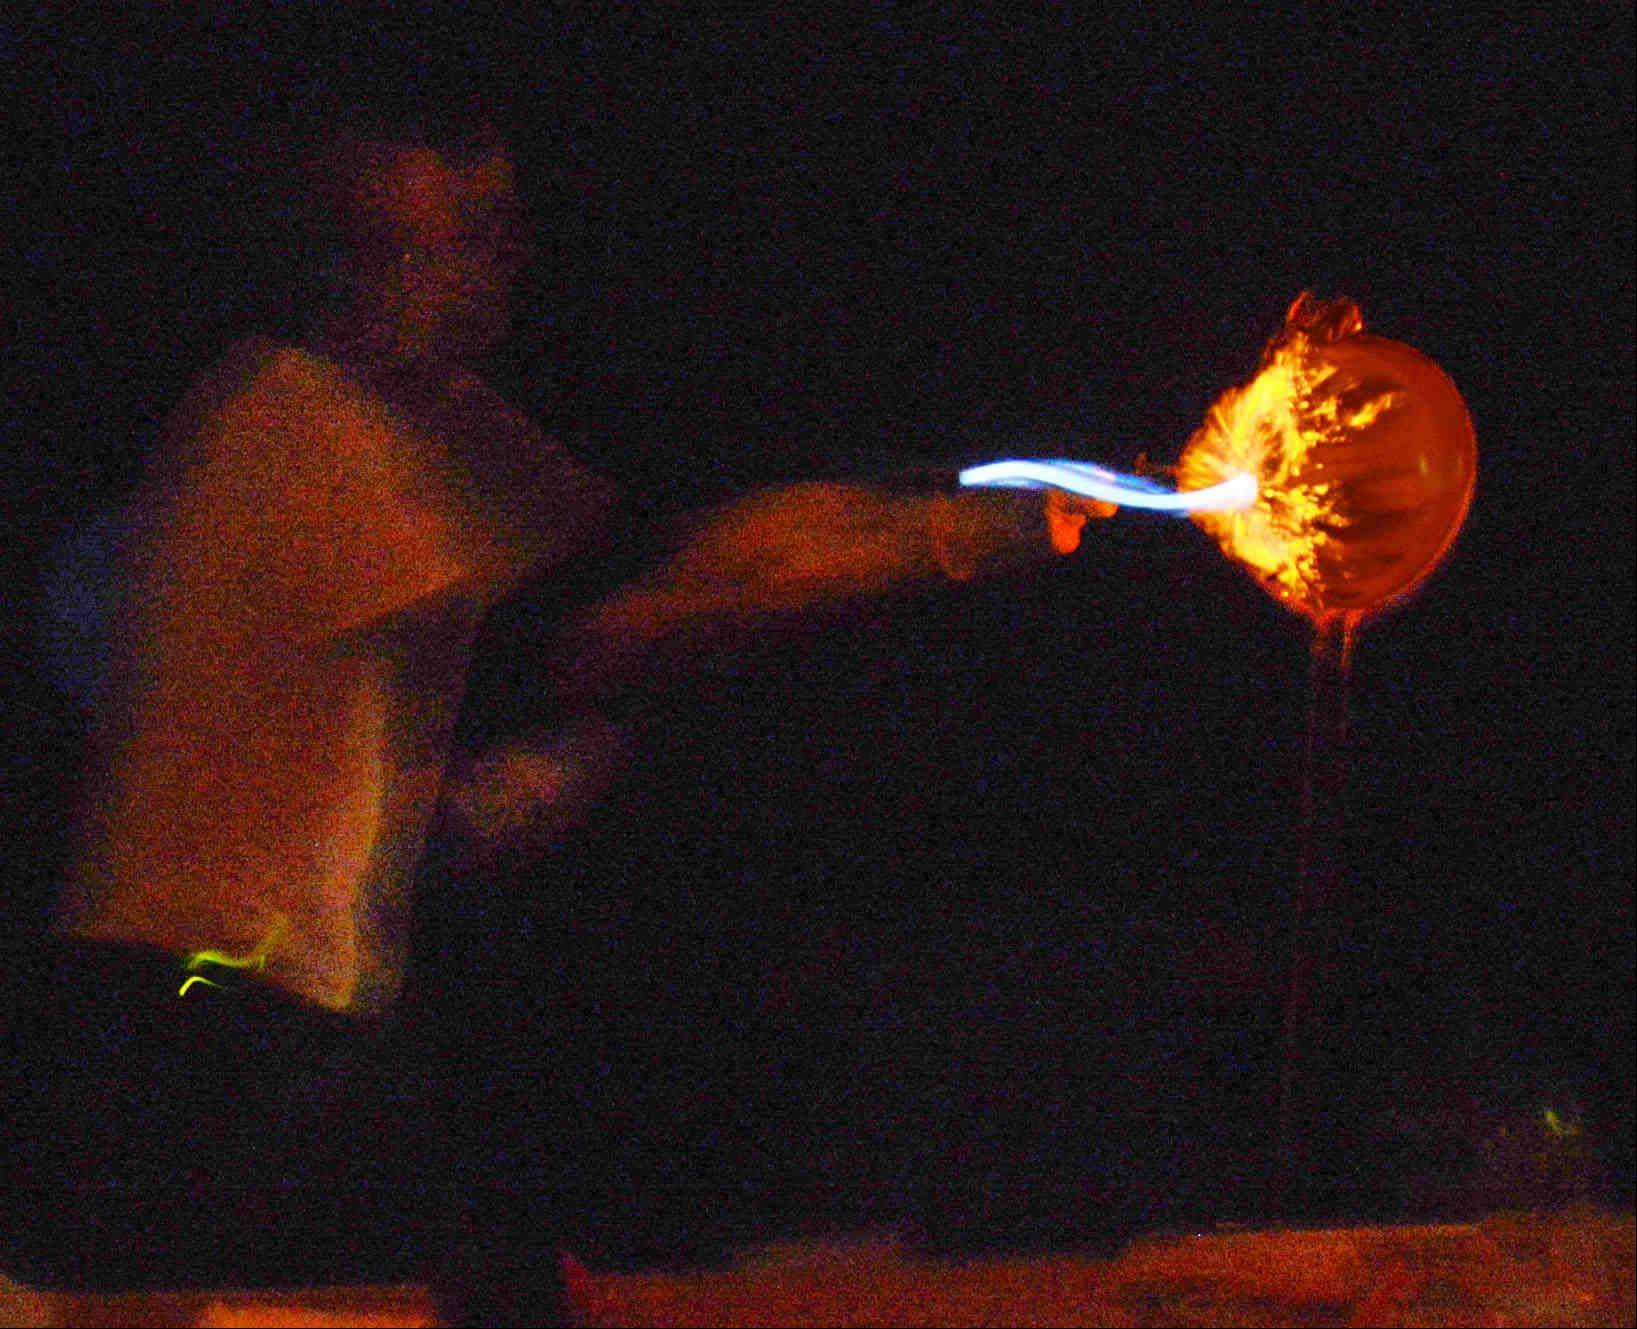 A hydrogen-filled balloon explodes in an instant as former Naperville North High School science teacher Lee Marek lignites it in a dark auditorium at Fermi Lab in Batavia Sunday during a Weird Science presentation.